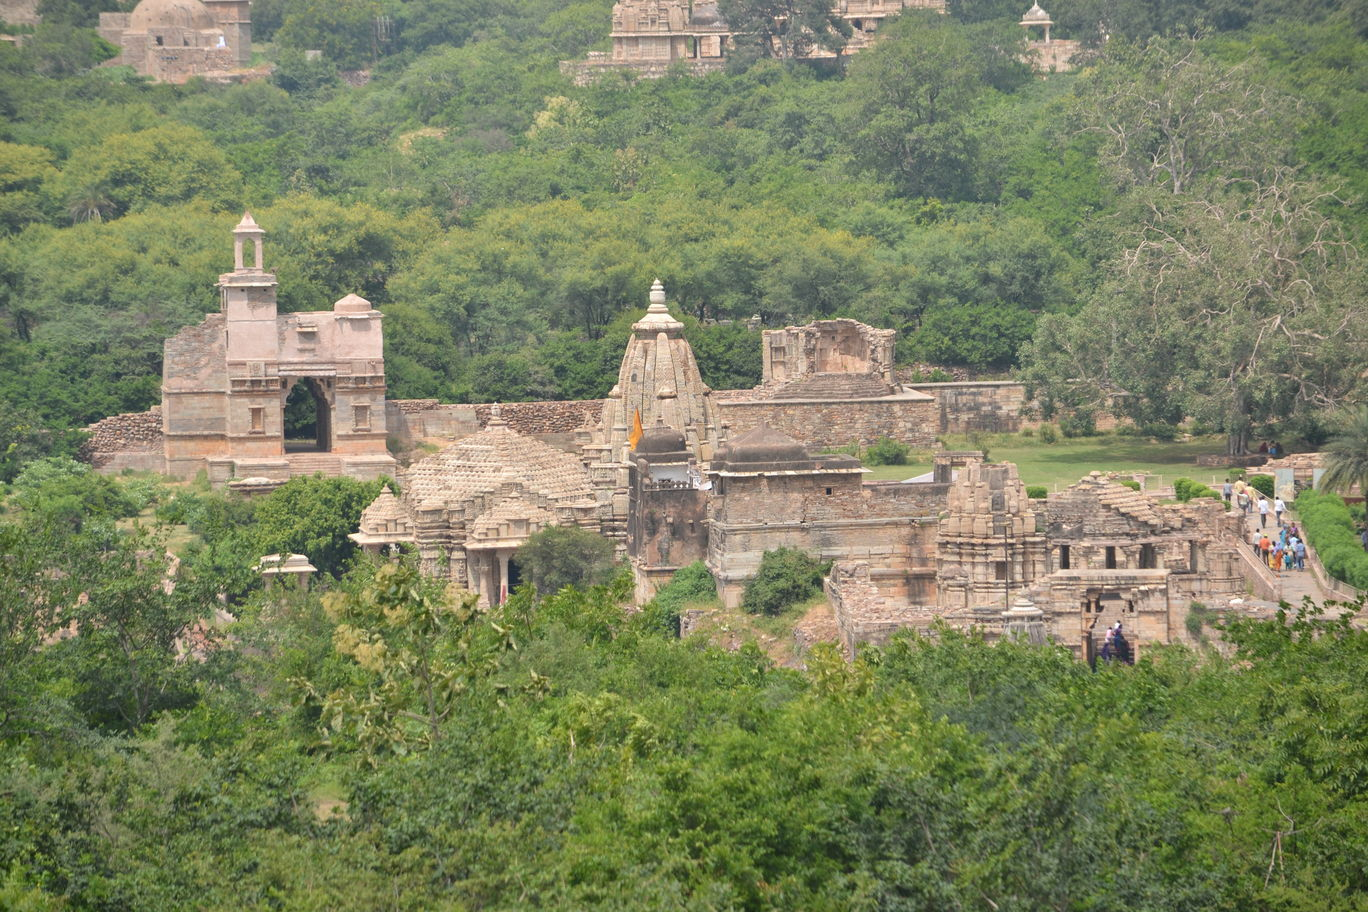 Photo of The majestic and humongous Chittorgarh Fort in pictures By The_Budget_Backpacker